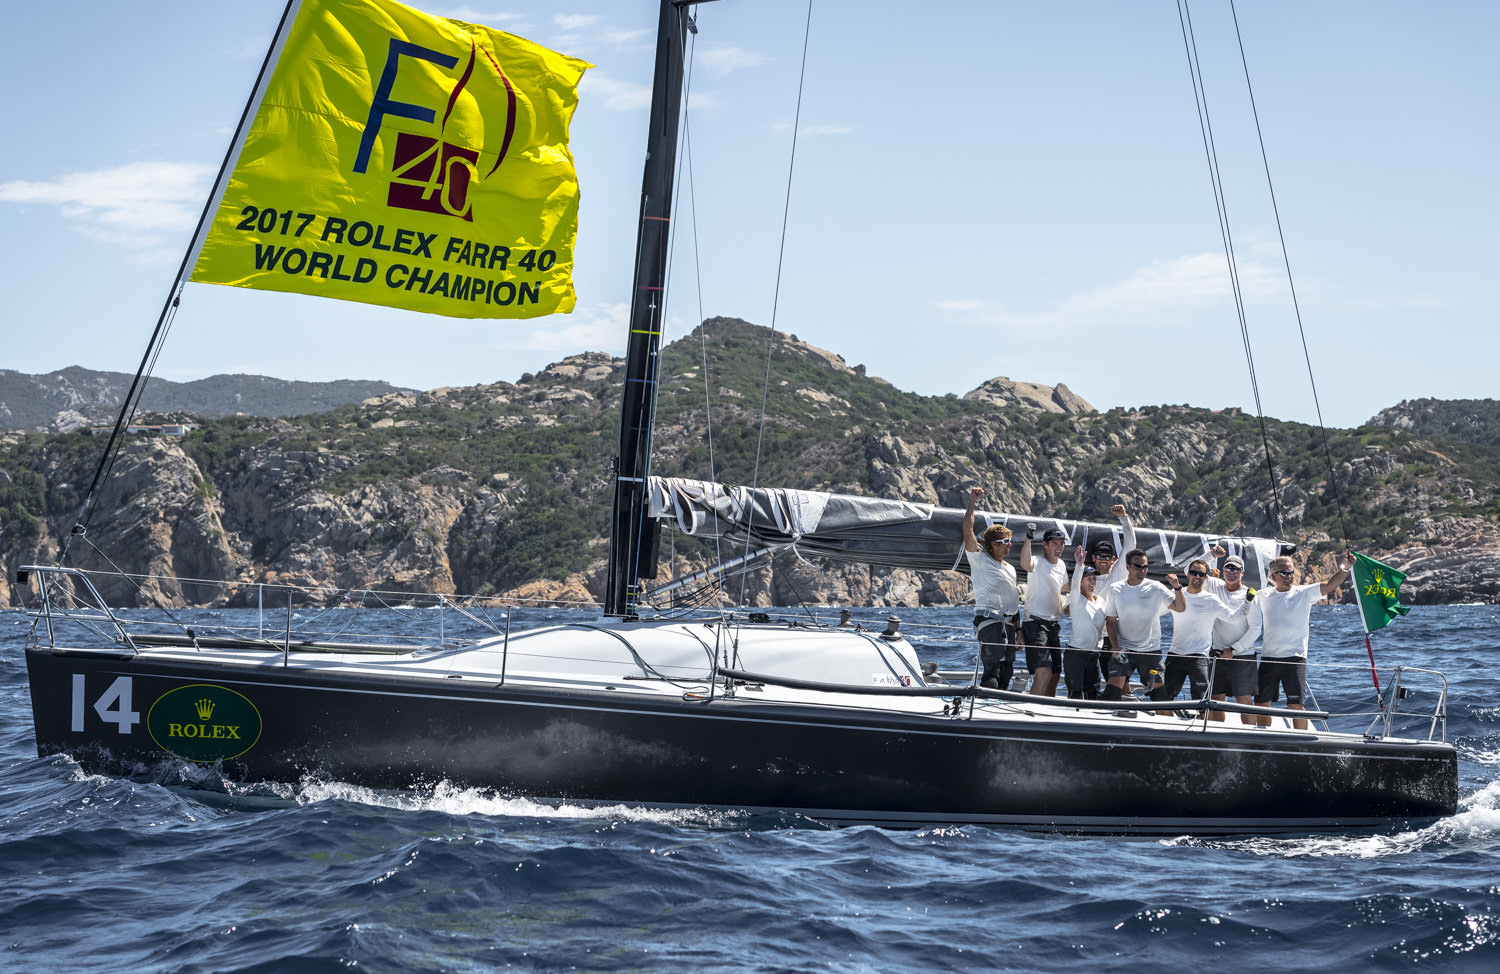 Plenty vince in Costa Smeralda il 20° Rolex Farr 40 Worlds  - NEWS - Yacht Club Costa Smeralda